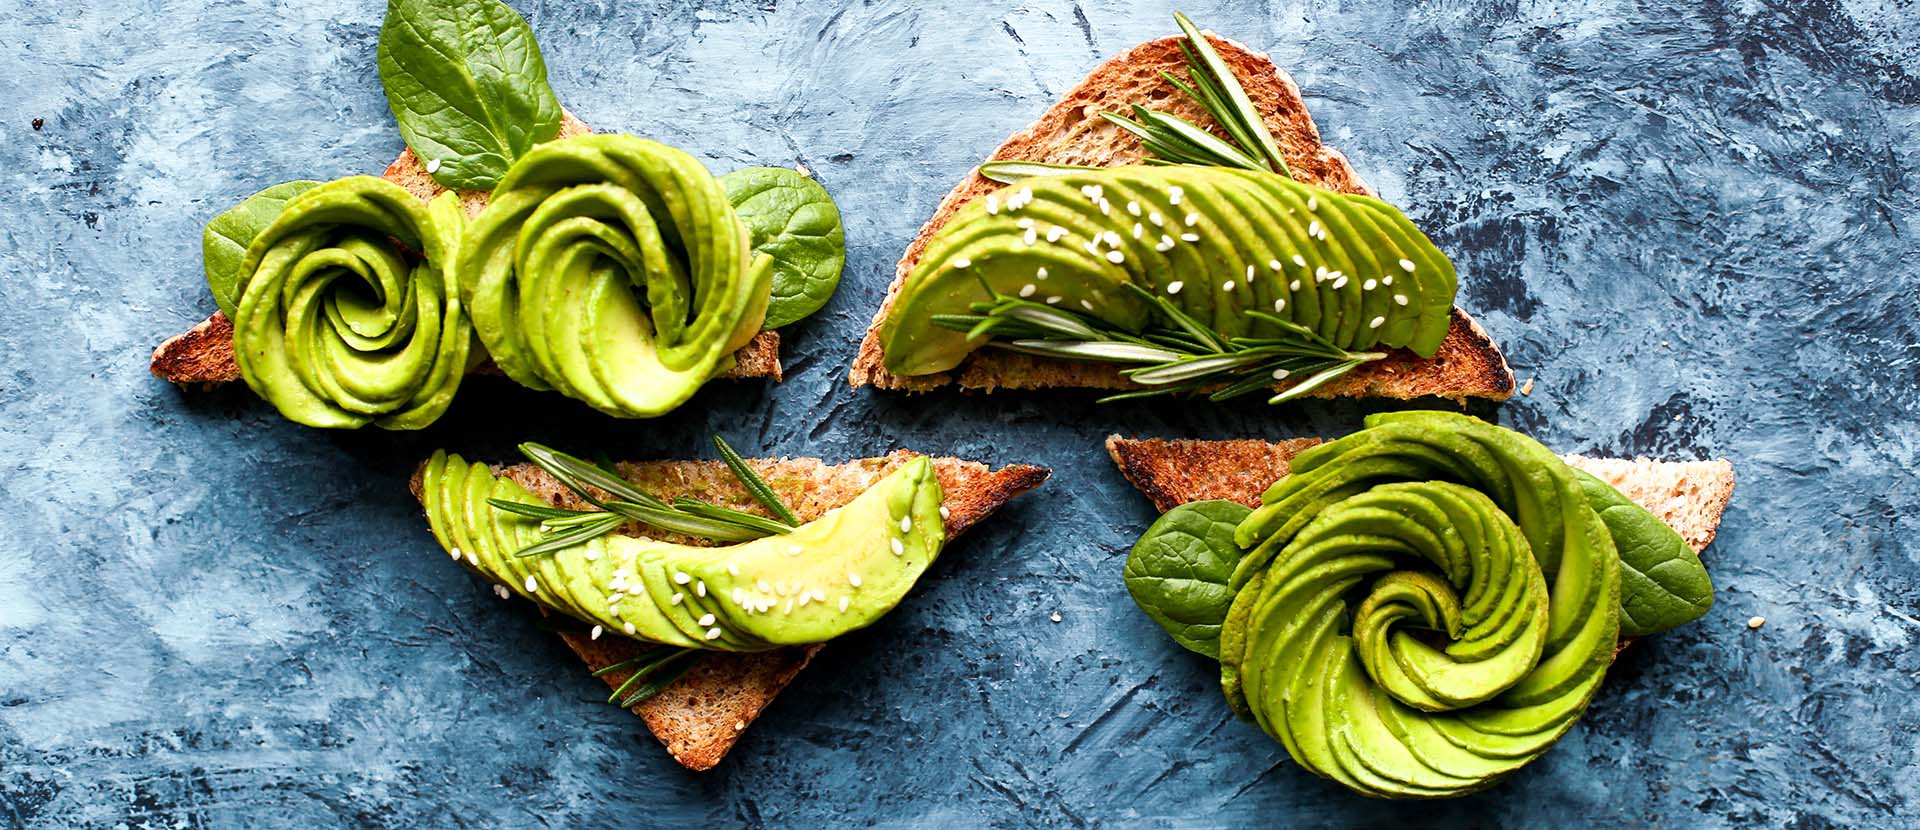 food fidelizzazione avocado toast marketing